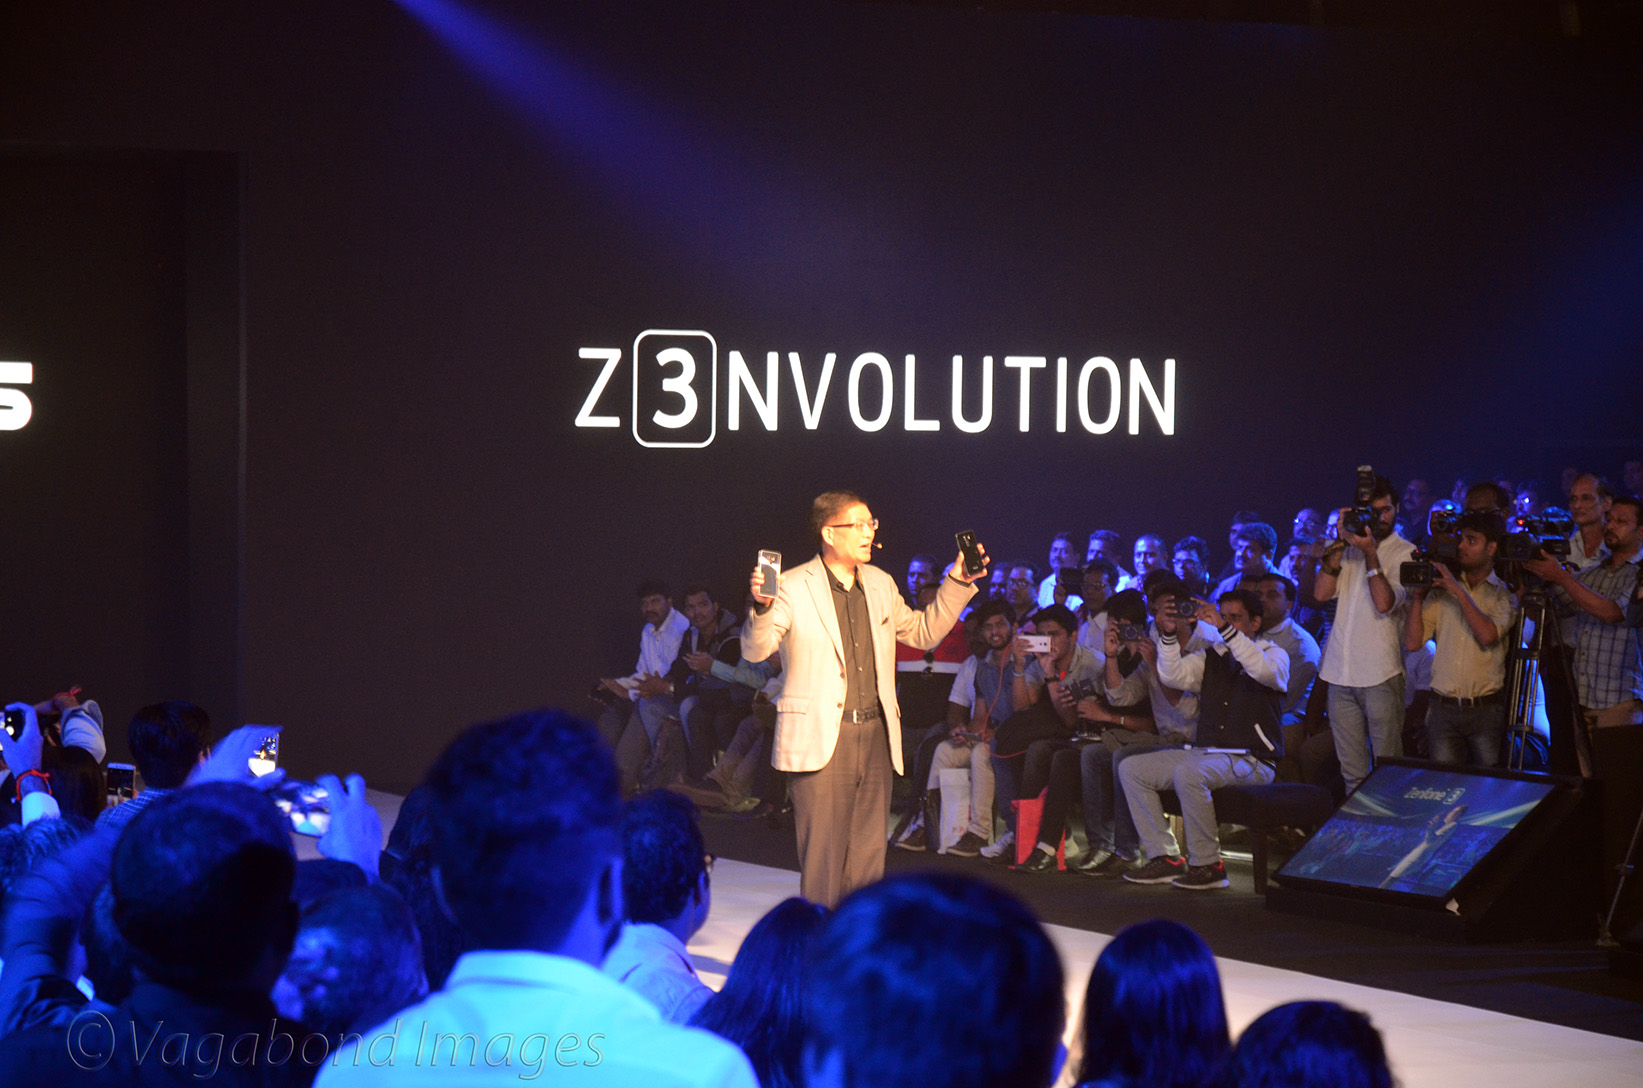 The leader himself - ASUS CEO Jerry Shen